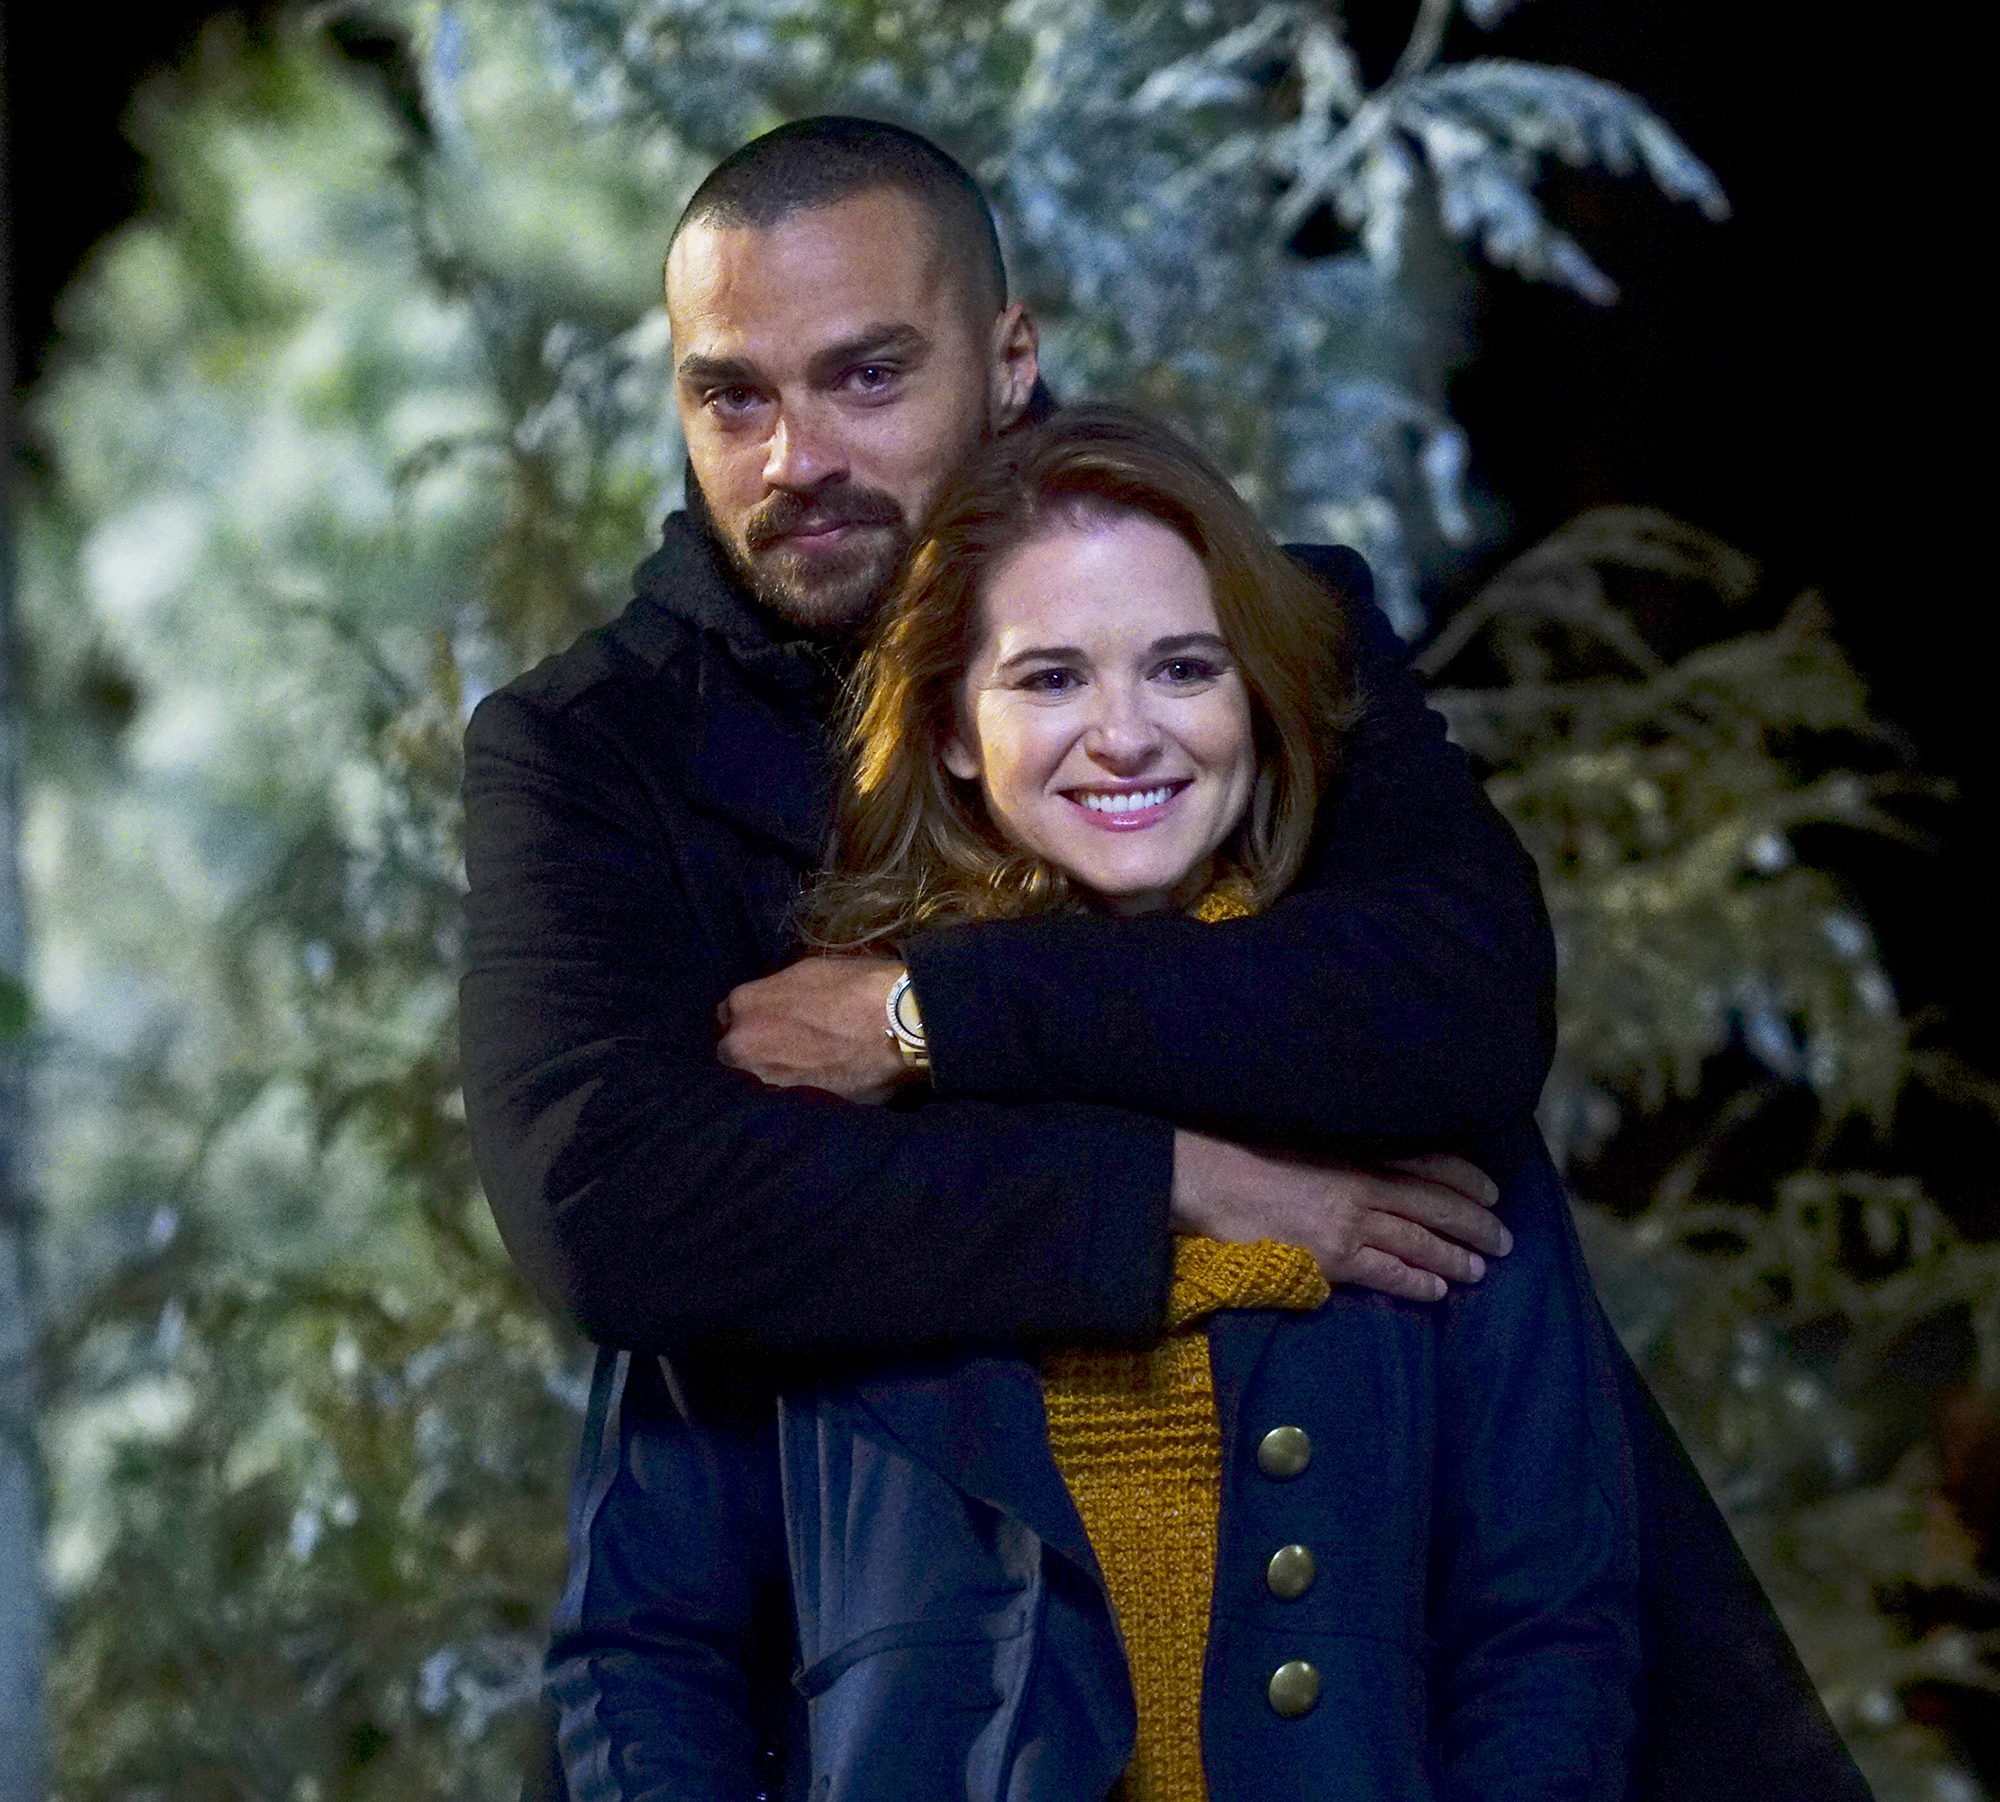 Jesse Williams and Sarah Drew on 'Grey's Anatomy' Gallery - Jackson and April traveled to Montana together to save a young girl's vocal chords. April also supported Jackson when he confronted his estranged father during the trip.